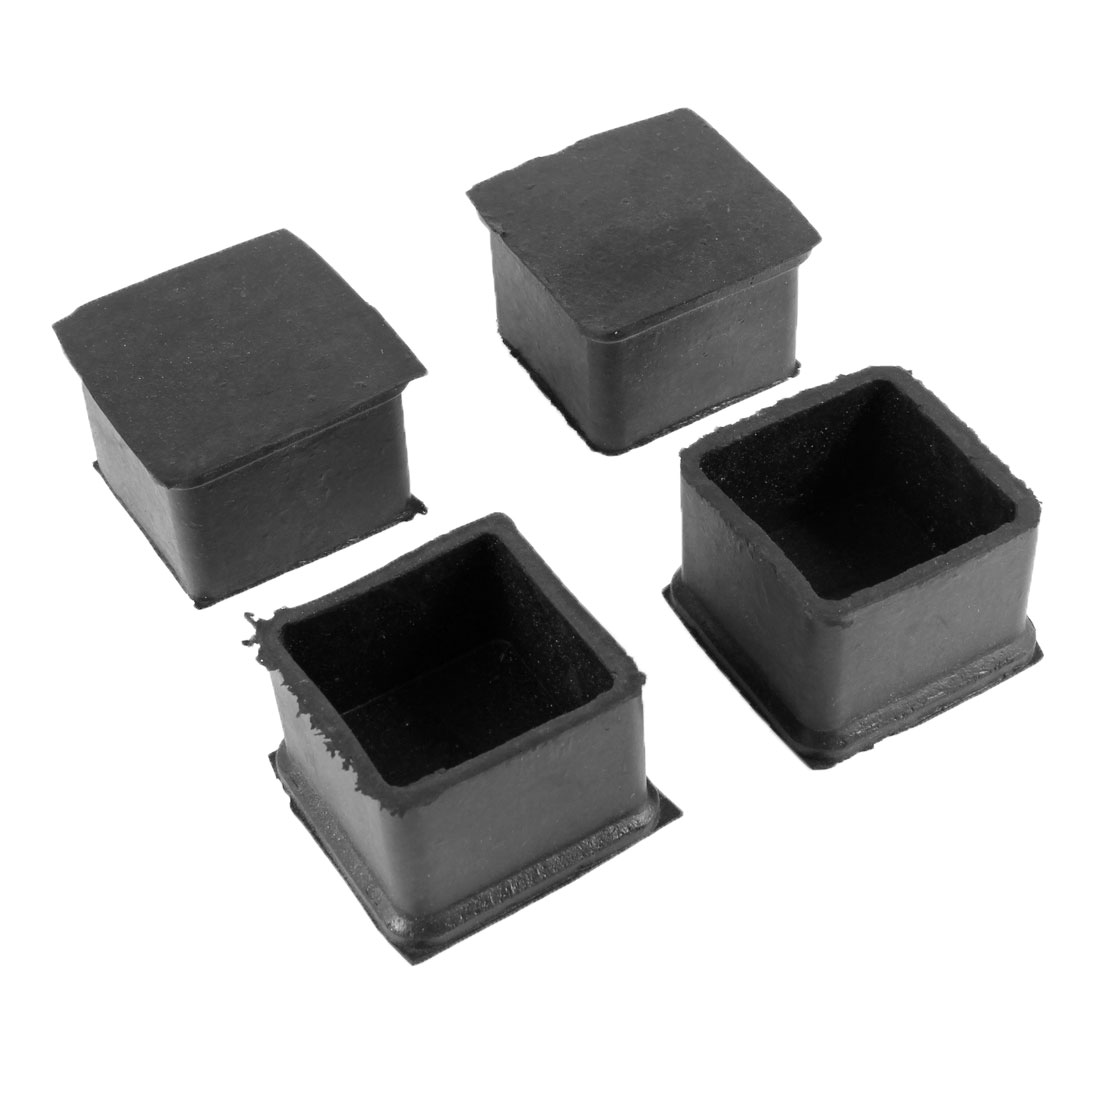 38mm Dia Square Furniture Table Chair Rubber Foot Pads Black 4 PCS